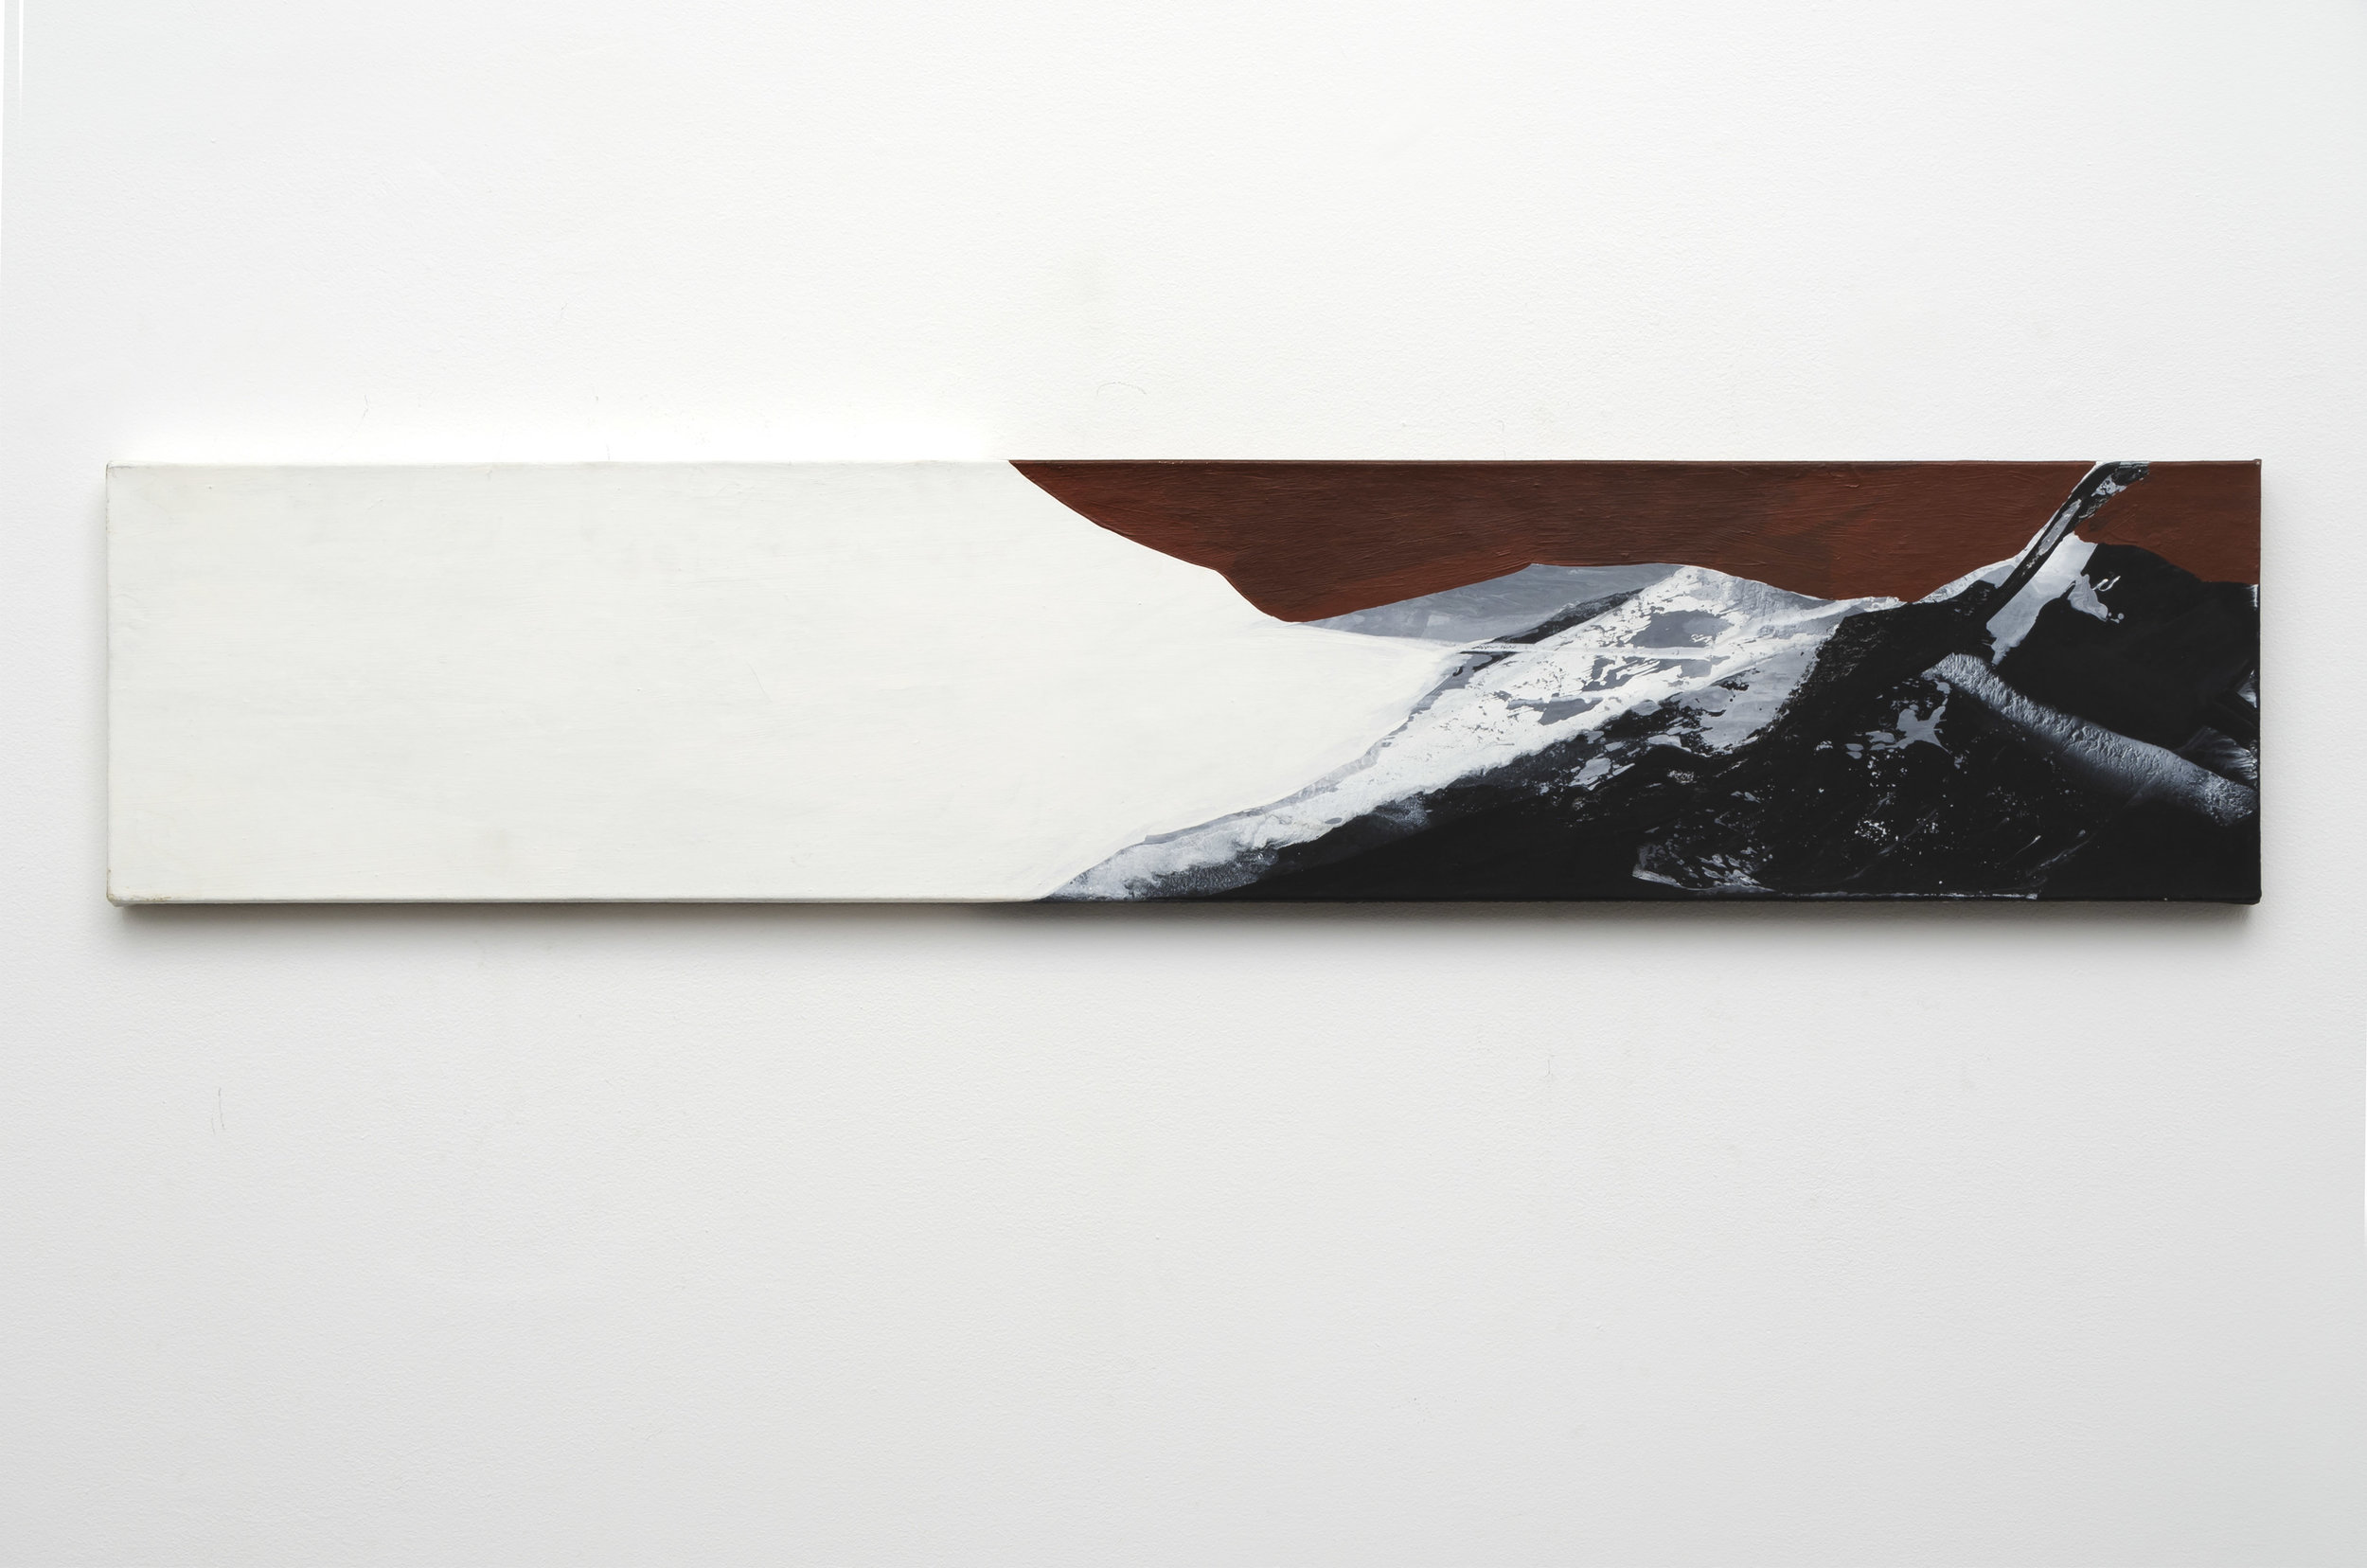 Untitled , c. 1980s acrylic on canvas 10.25 x 50.5 inches; 26 x 128.3 centimeters